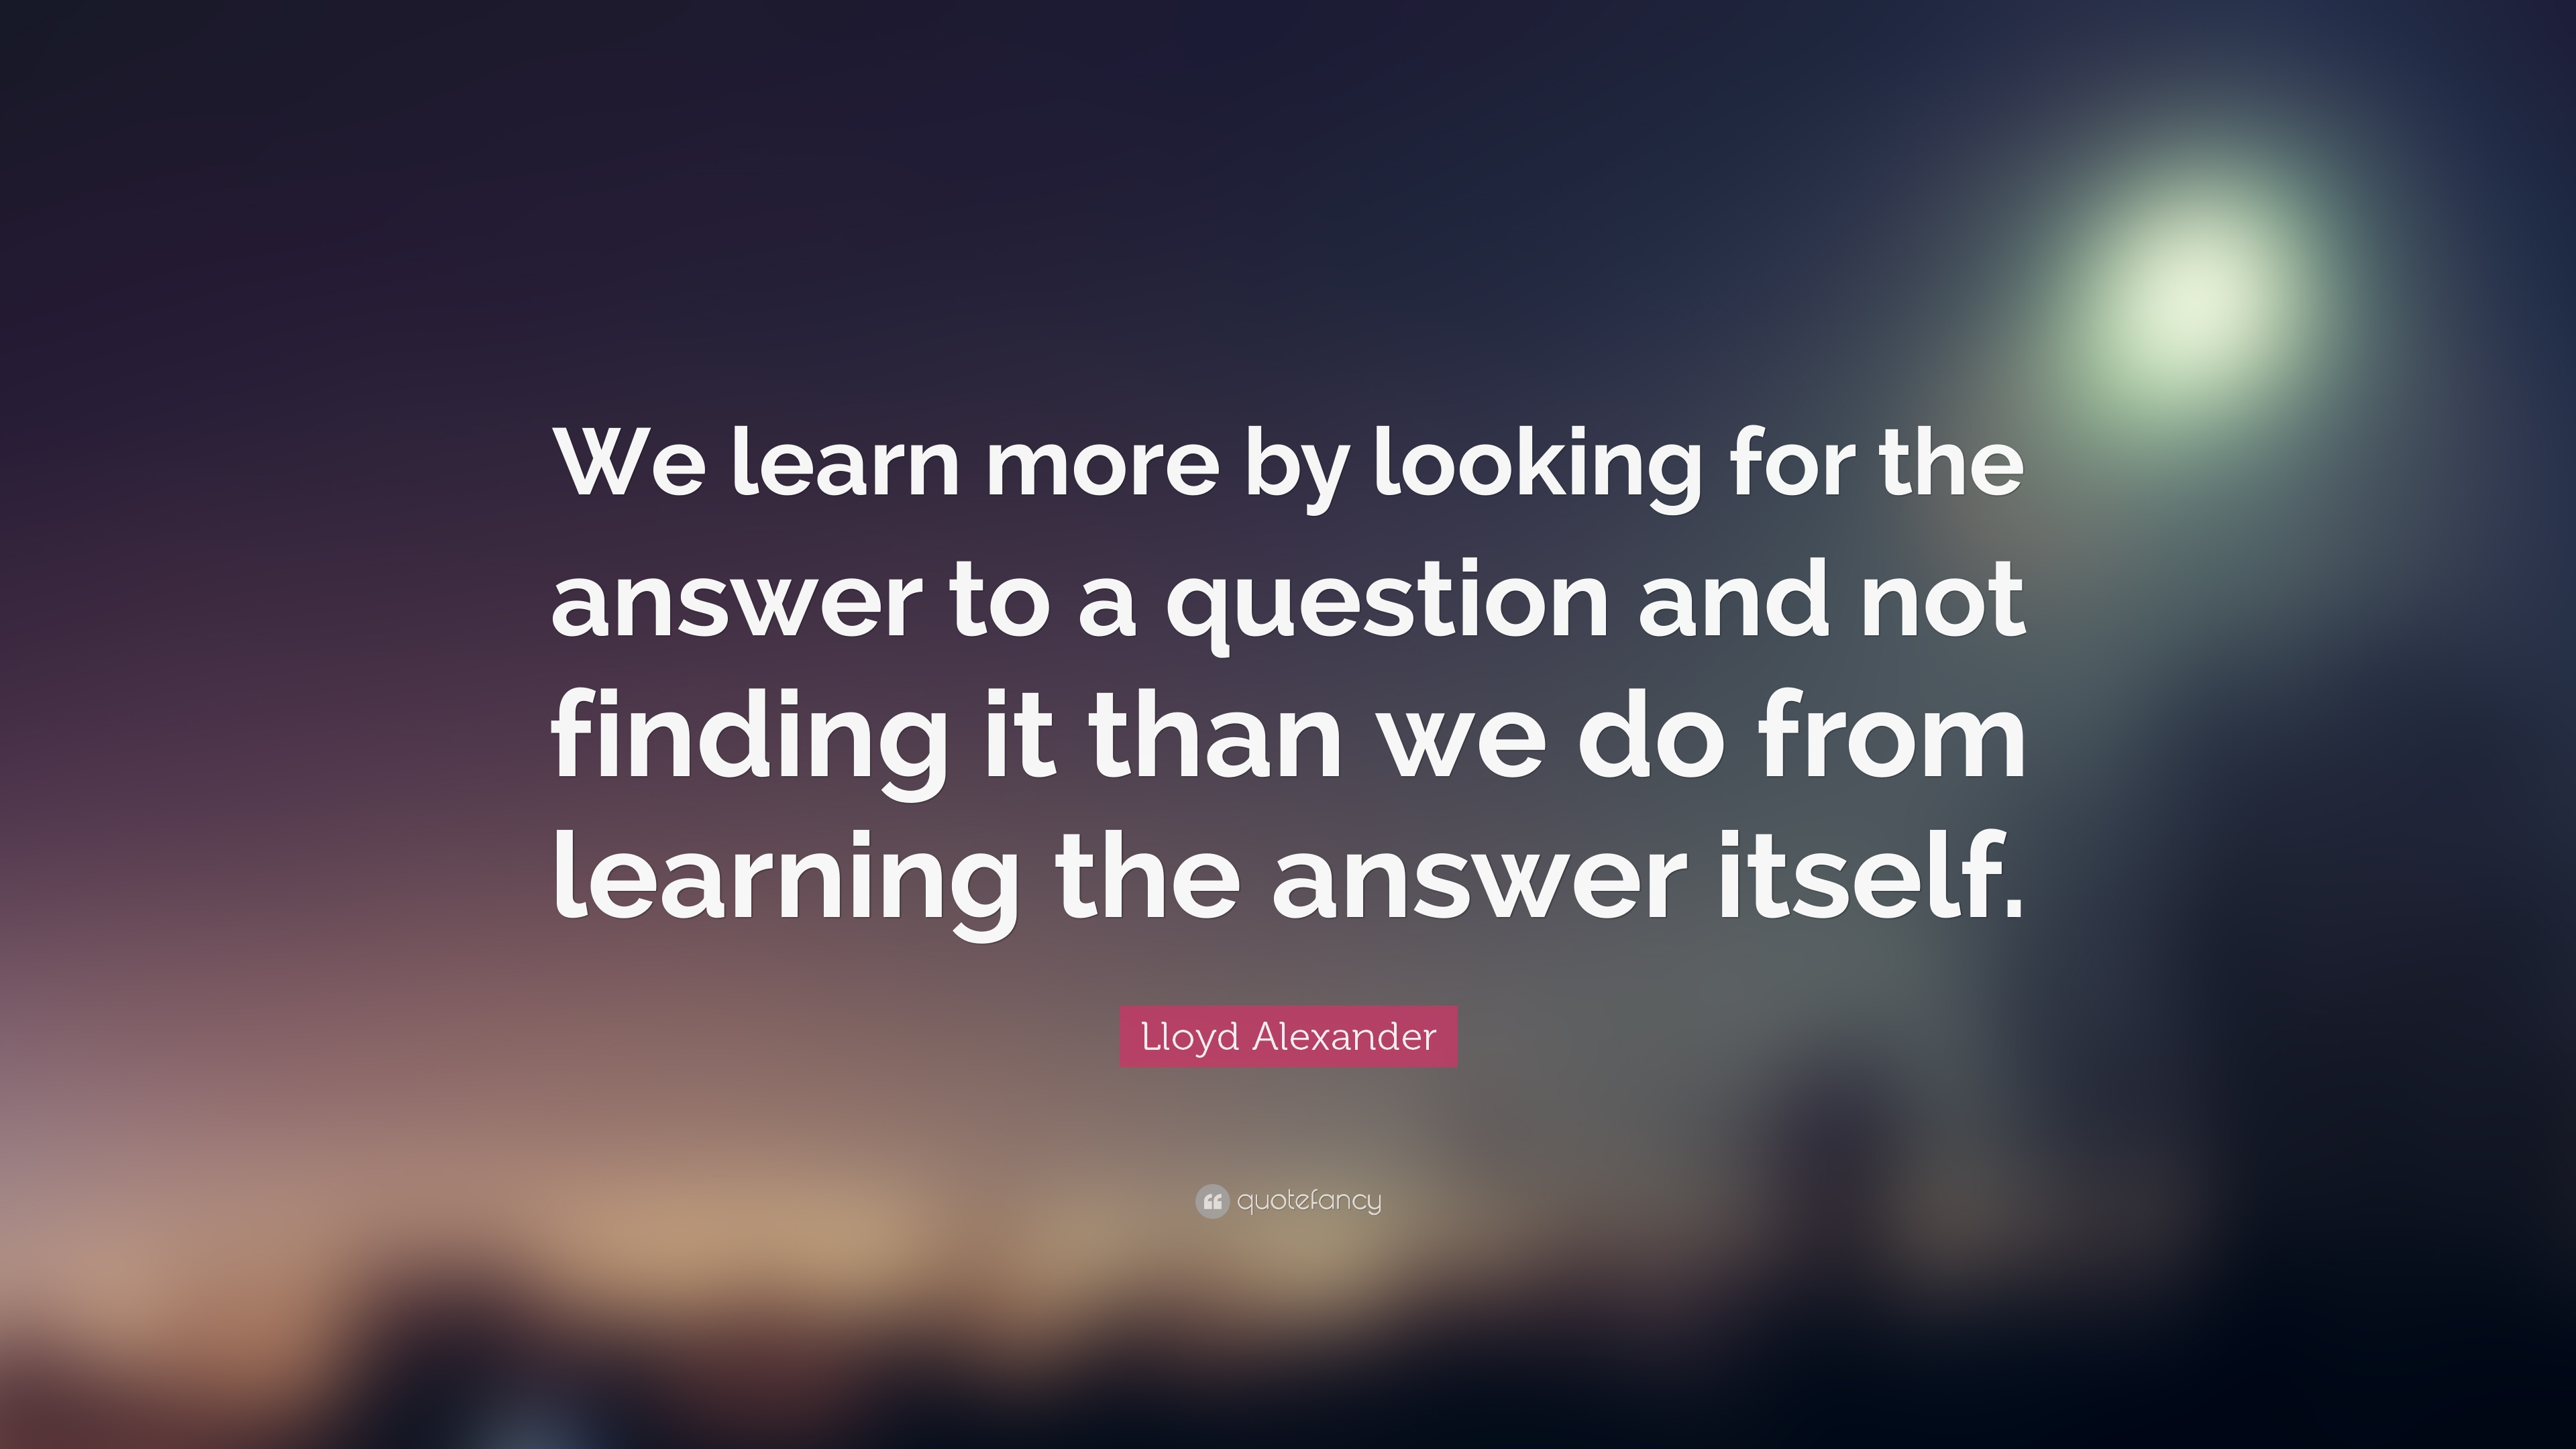 lloyd alexander quote we learn more by looking for the answer to lloyd alexander quote we learn more by looking for the answer to a question